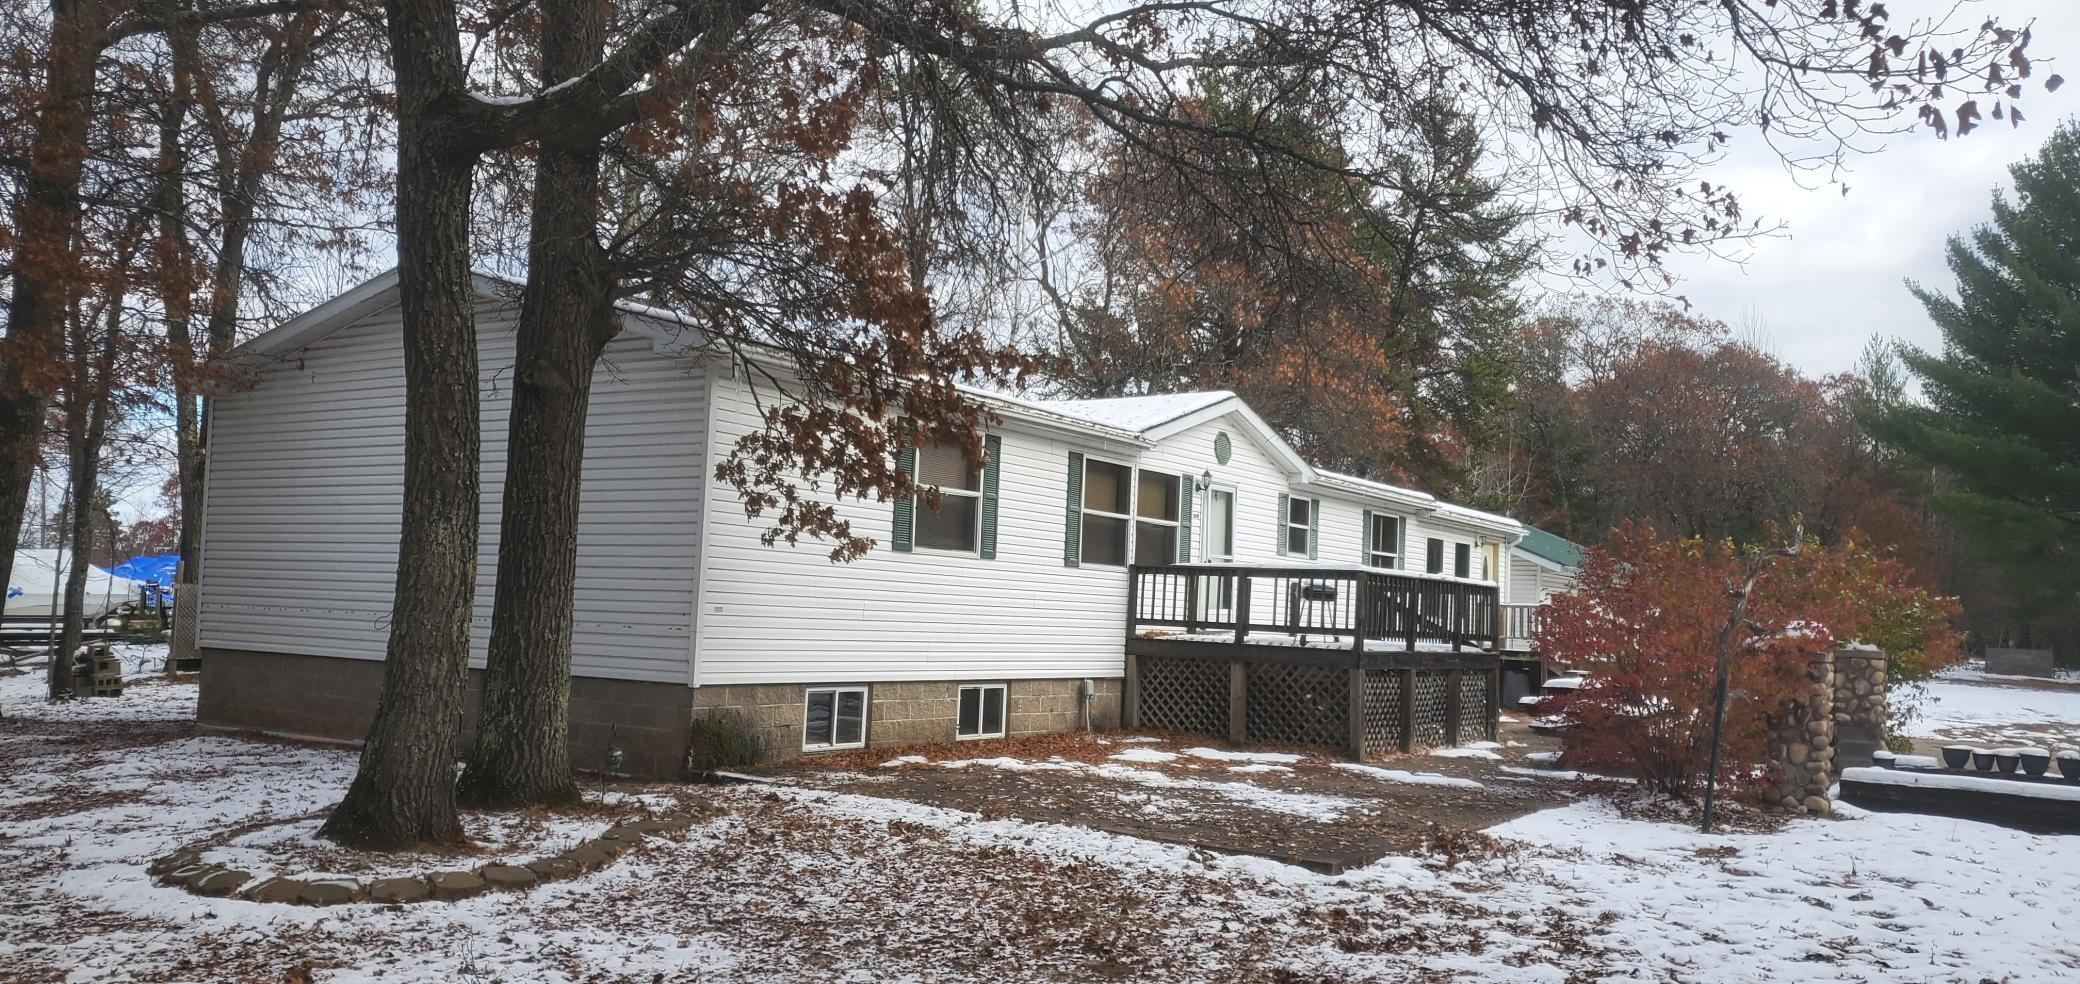 30264 Dove Road Property Photo - Danbury, WI real estate listing